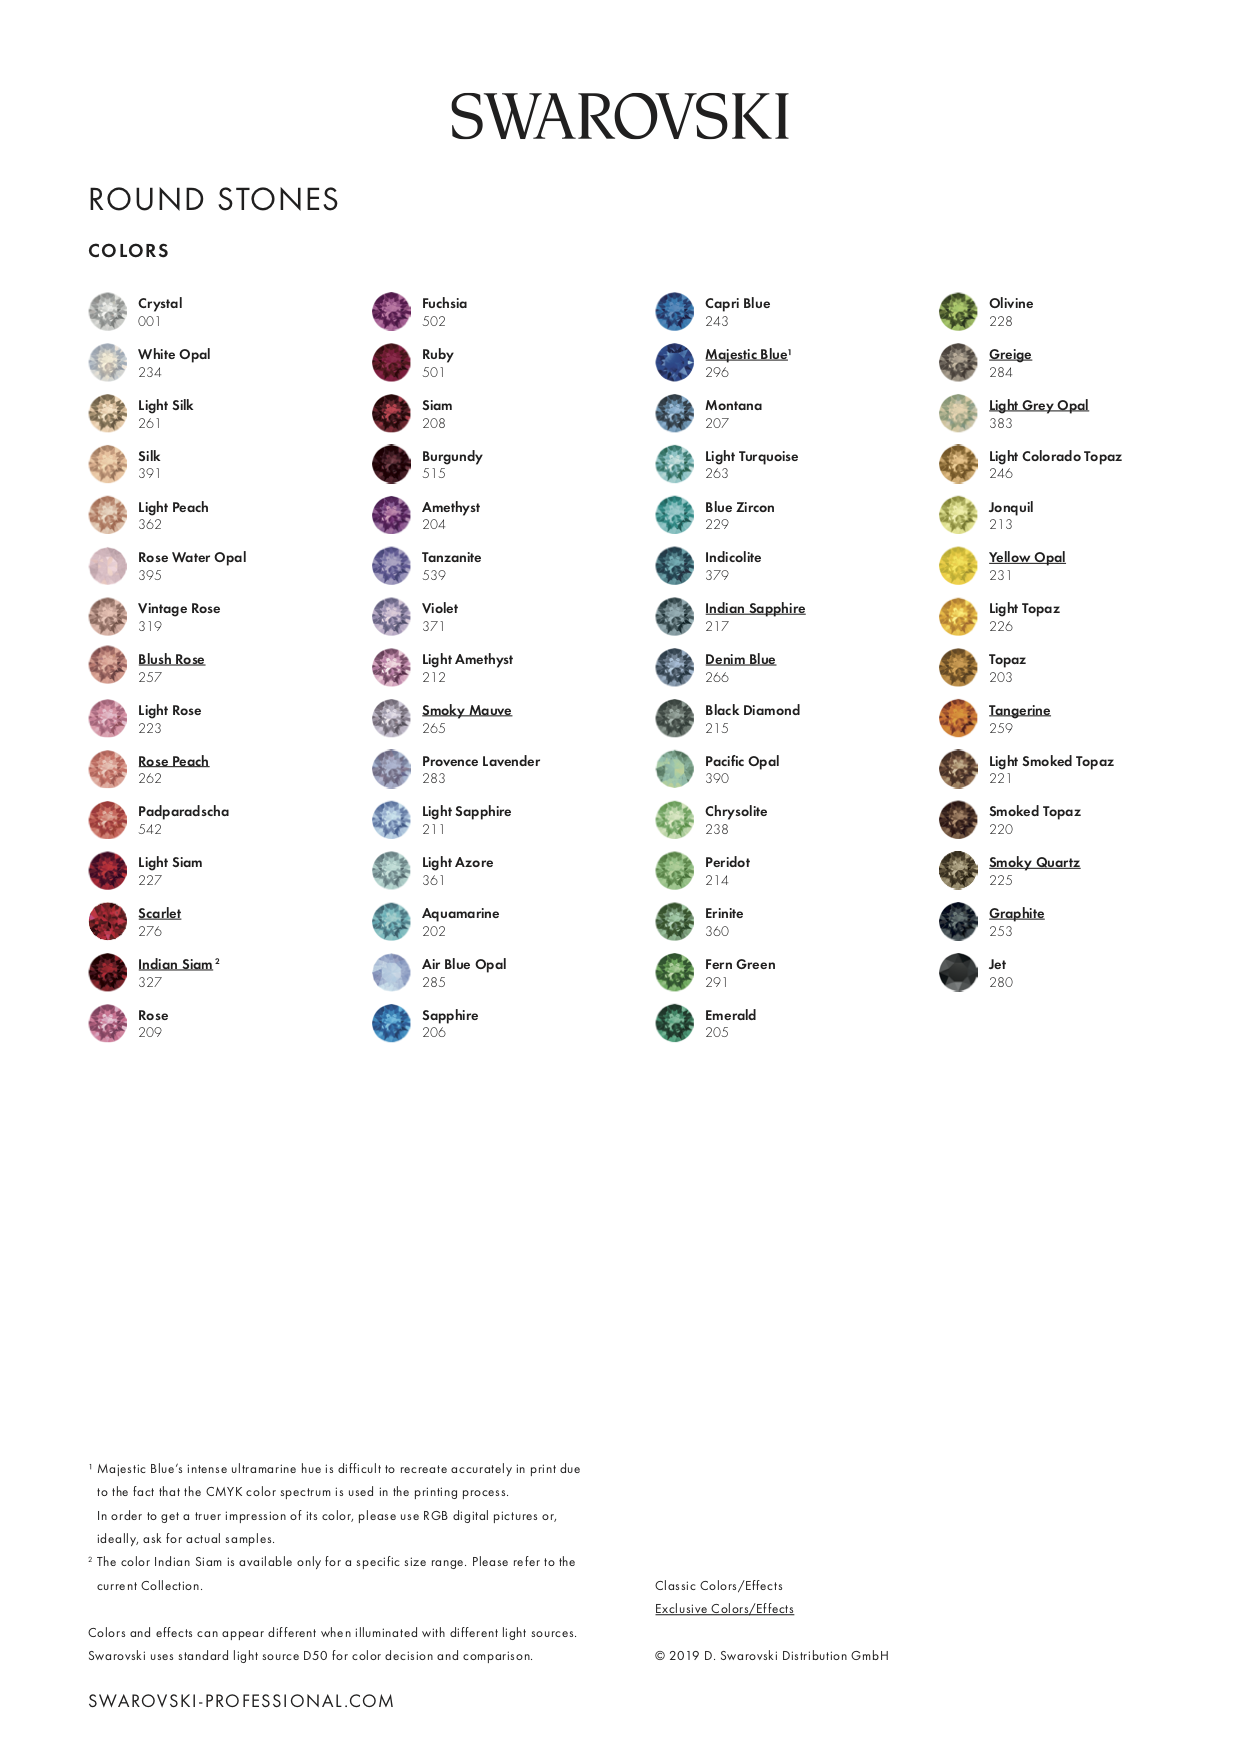 COLOUR CHART FOR ROUND STONES